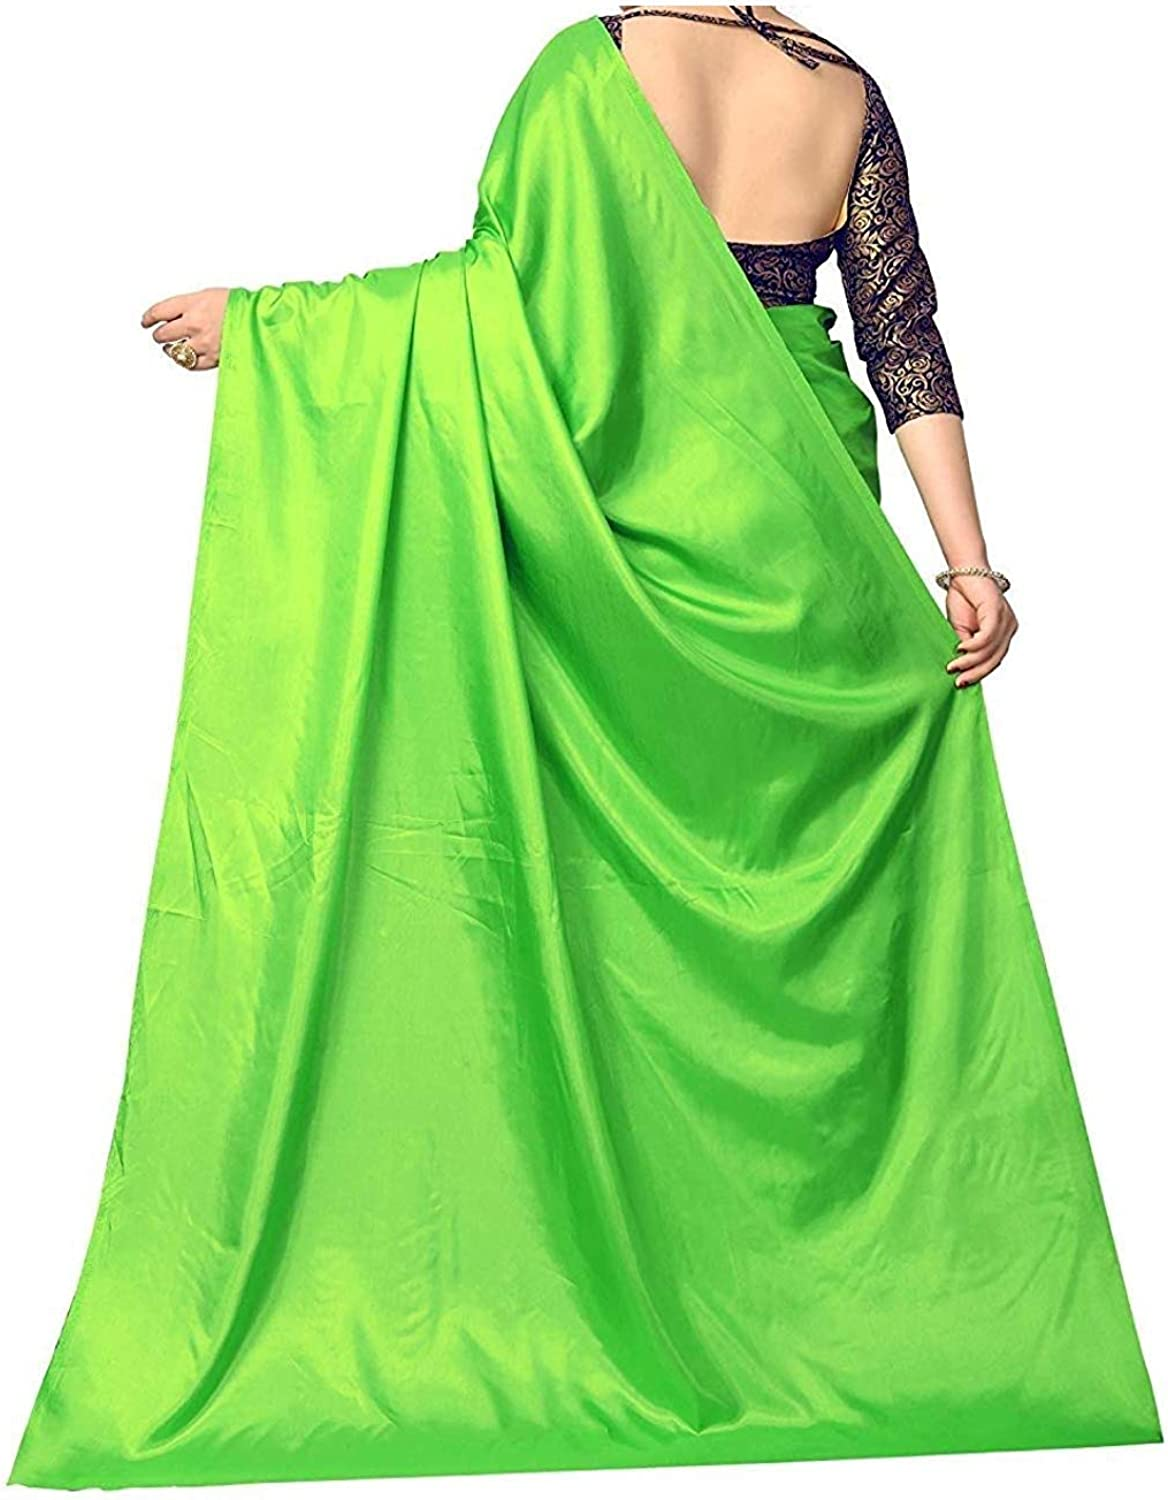 Indofashion Indian Women Plain Satin Silk Saree with Blouse Piece Daily Use Casual Party Dress